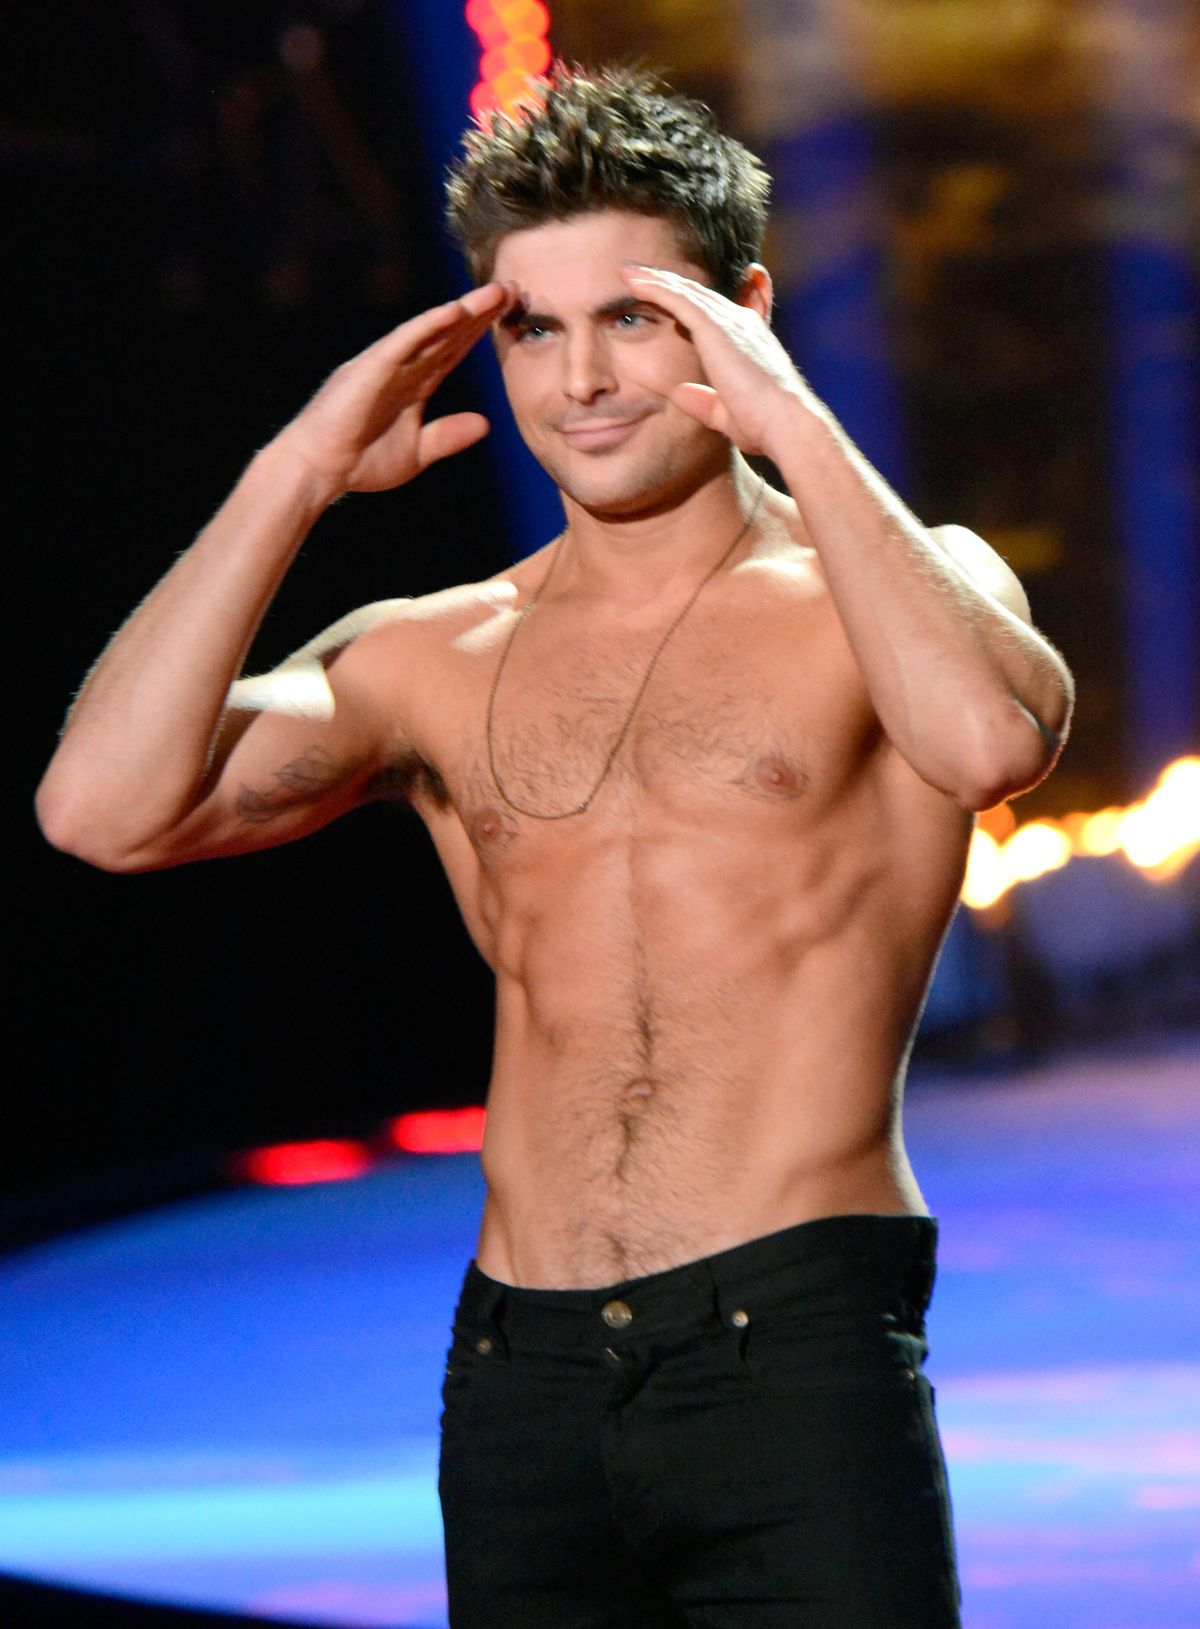 Zac Efron at 2014 MTV Movie Awards - Show